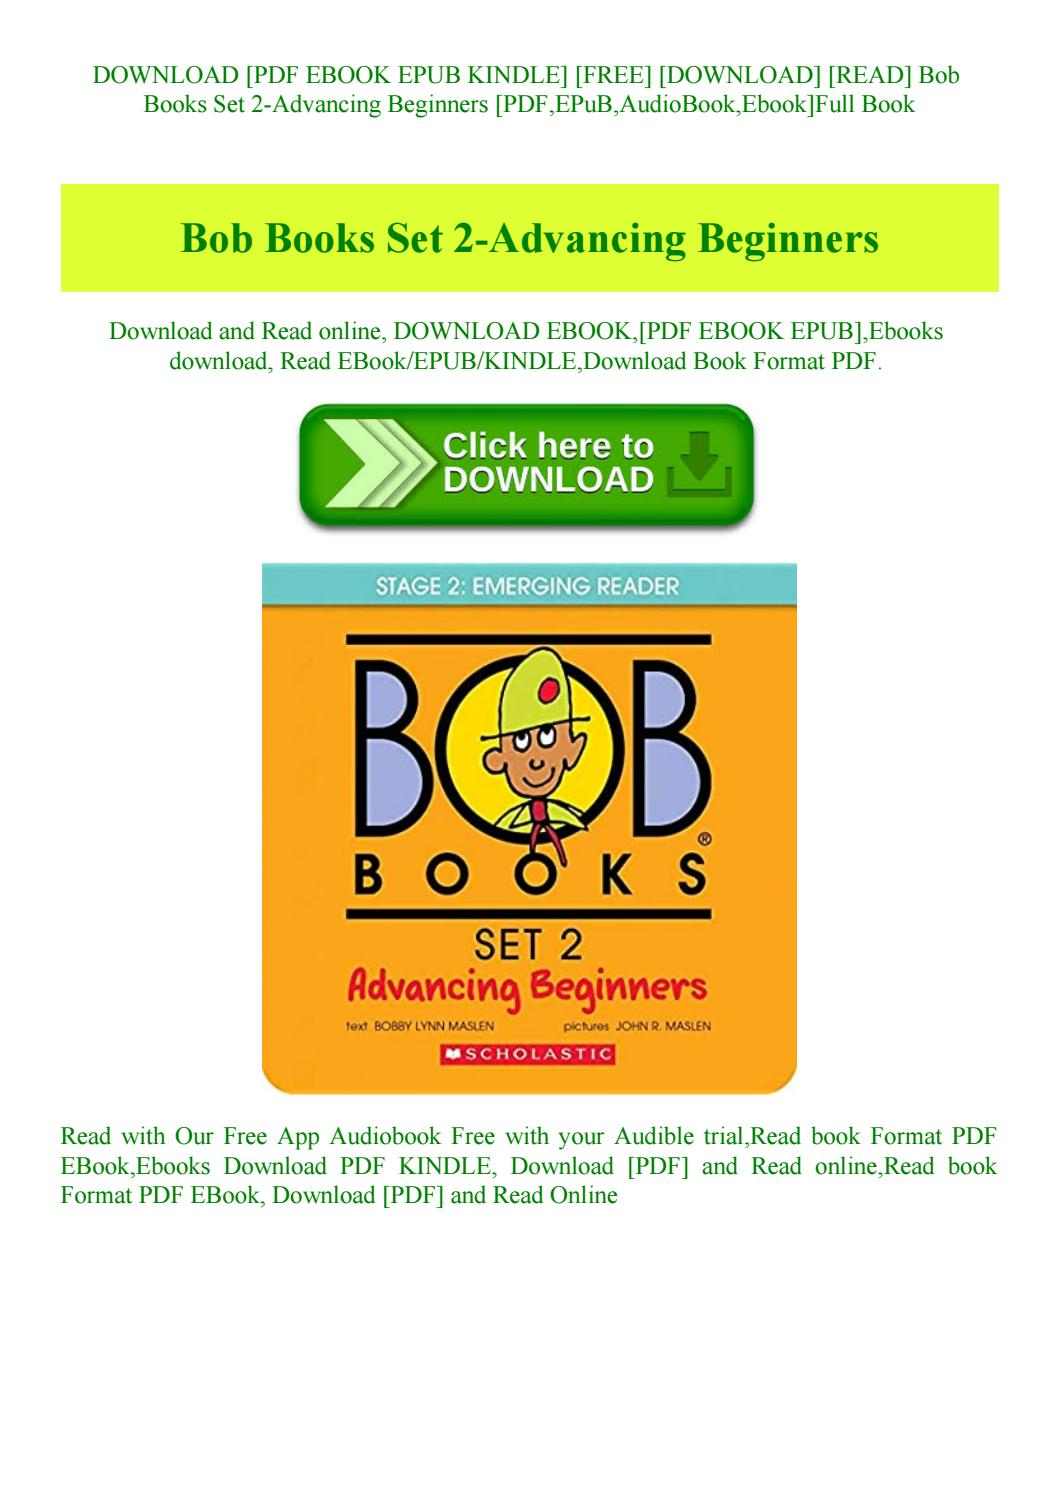 Bob Books Advancing Beginners Pdf